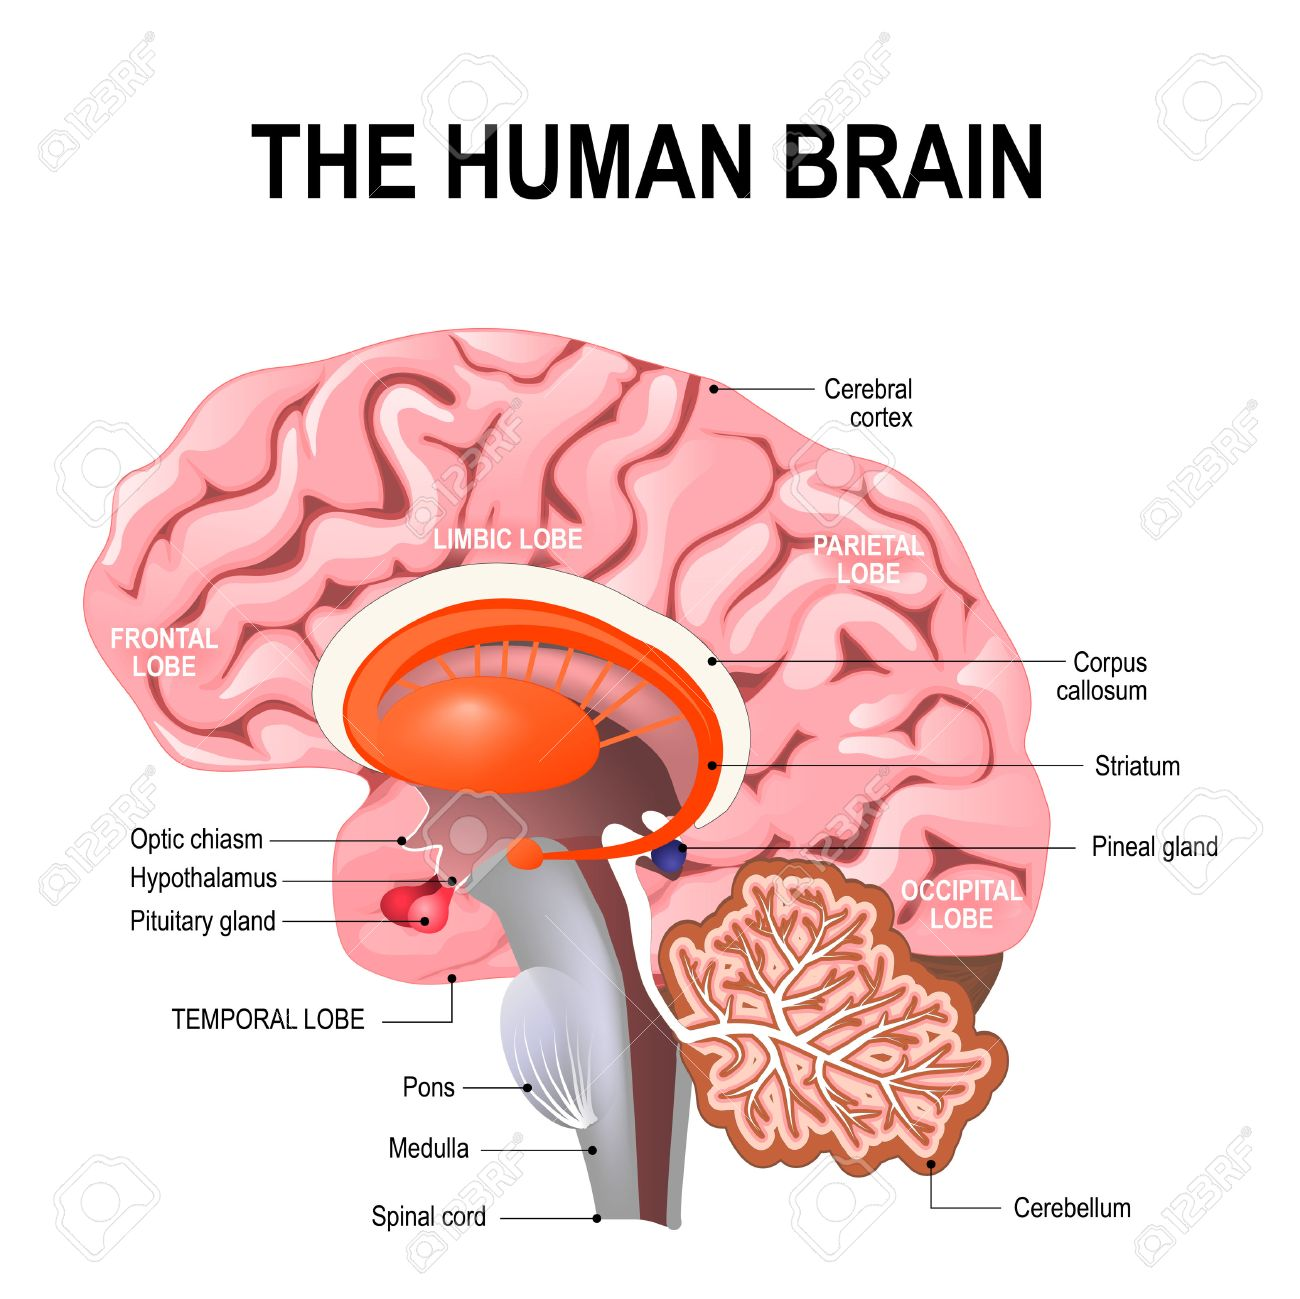 Detailed Anatomy Of The Human Brain. Illustration Showing The ...